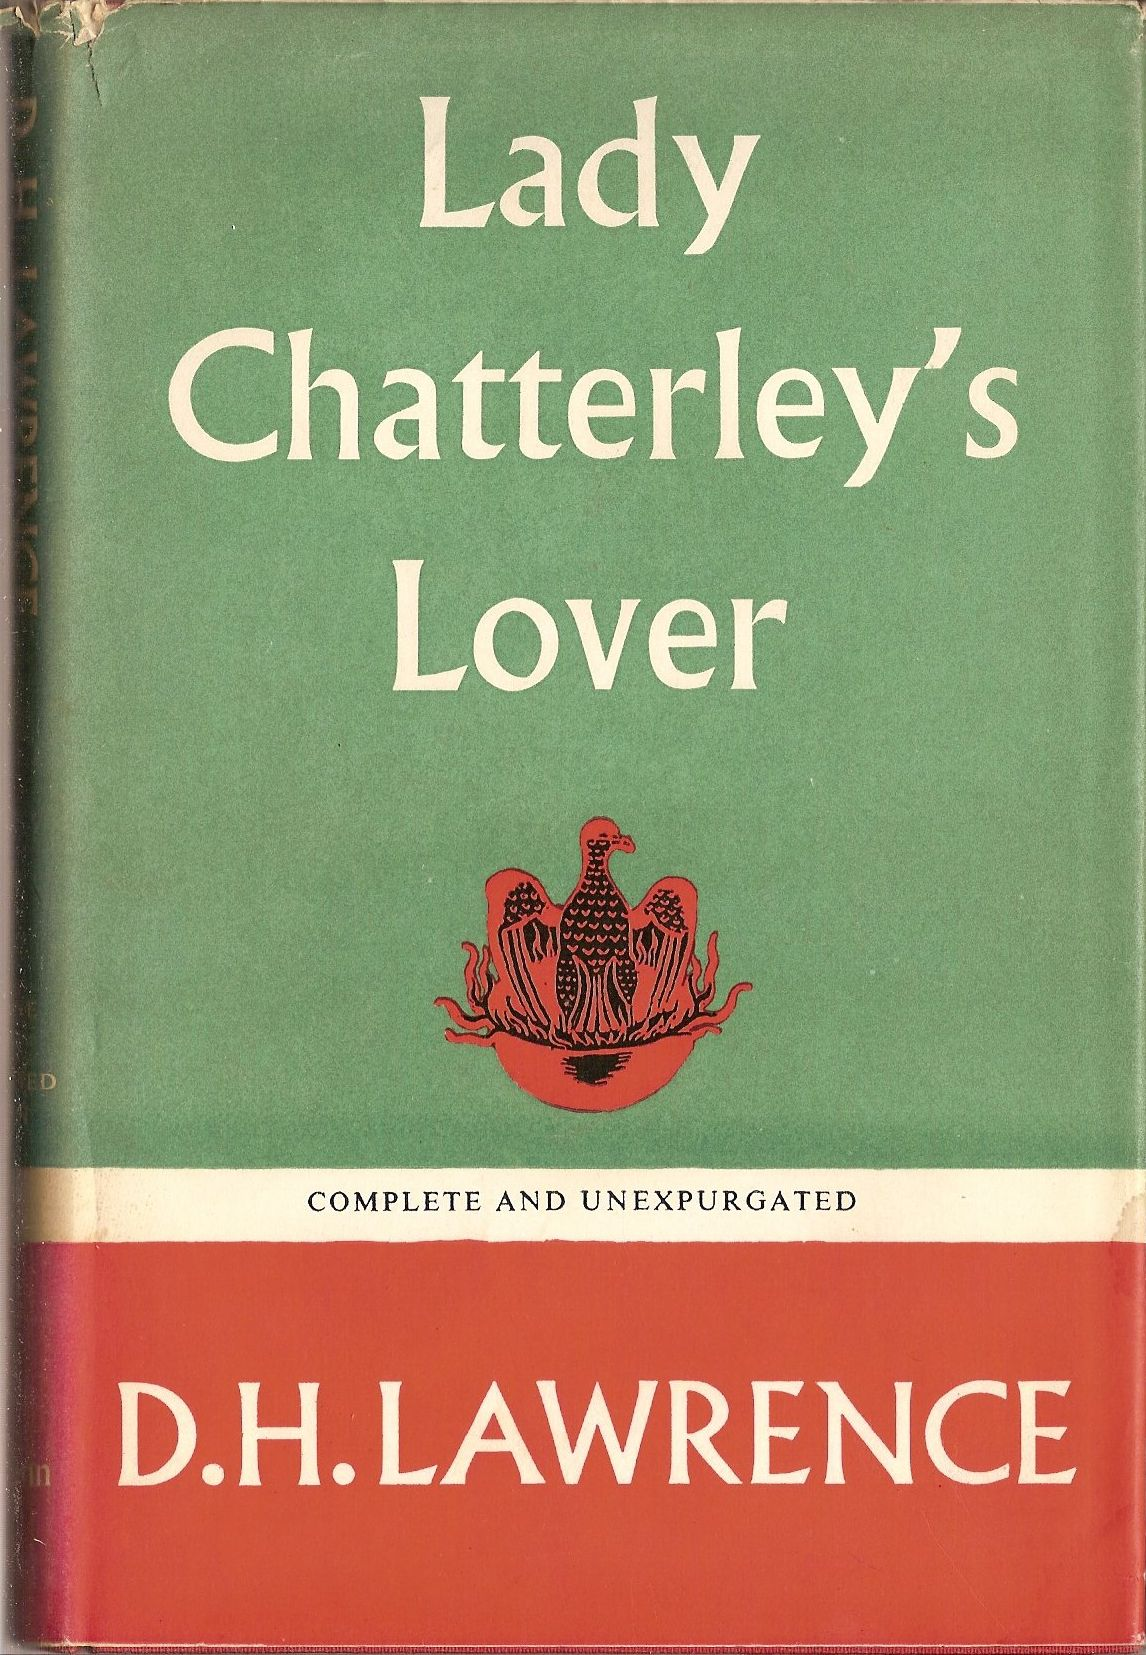 d-h-lawrence-lady-chatterleys-lover-published-by-heinemann-1960-first-complete-and-unexpurgated-edition